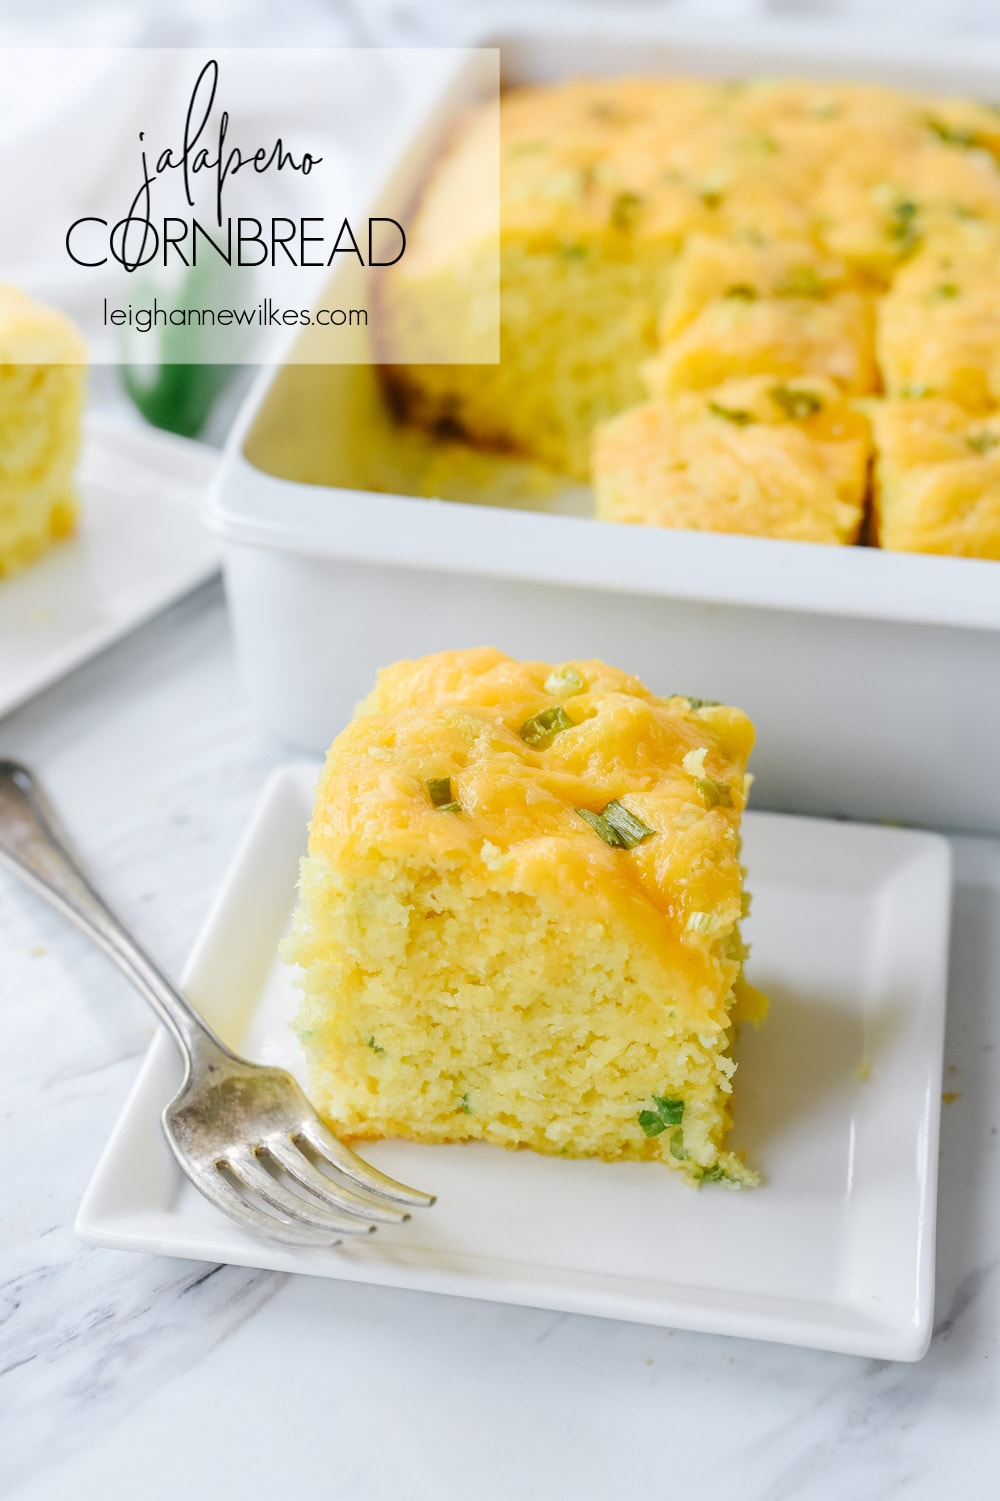 slice of jalapeno cornbread on a plate